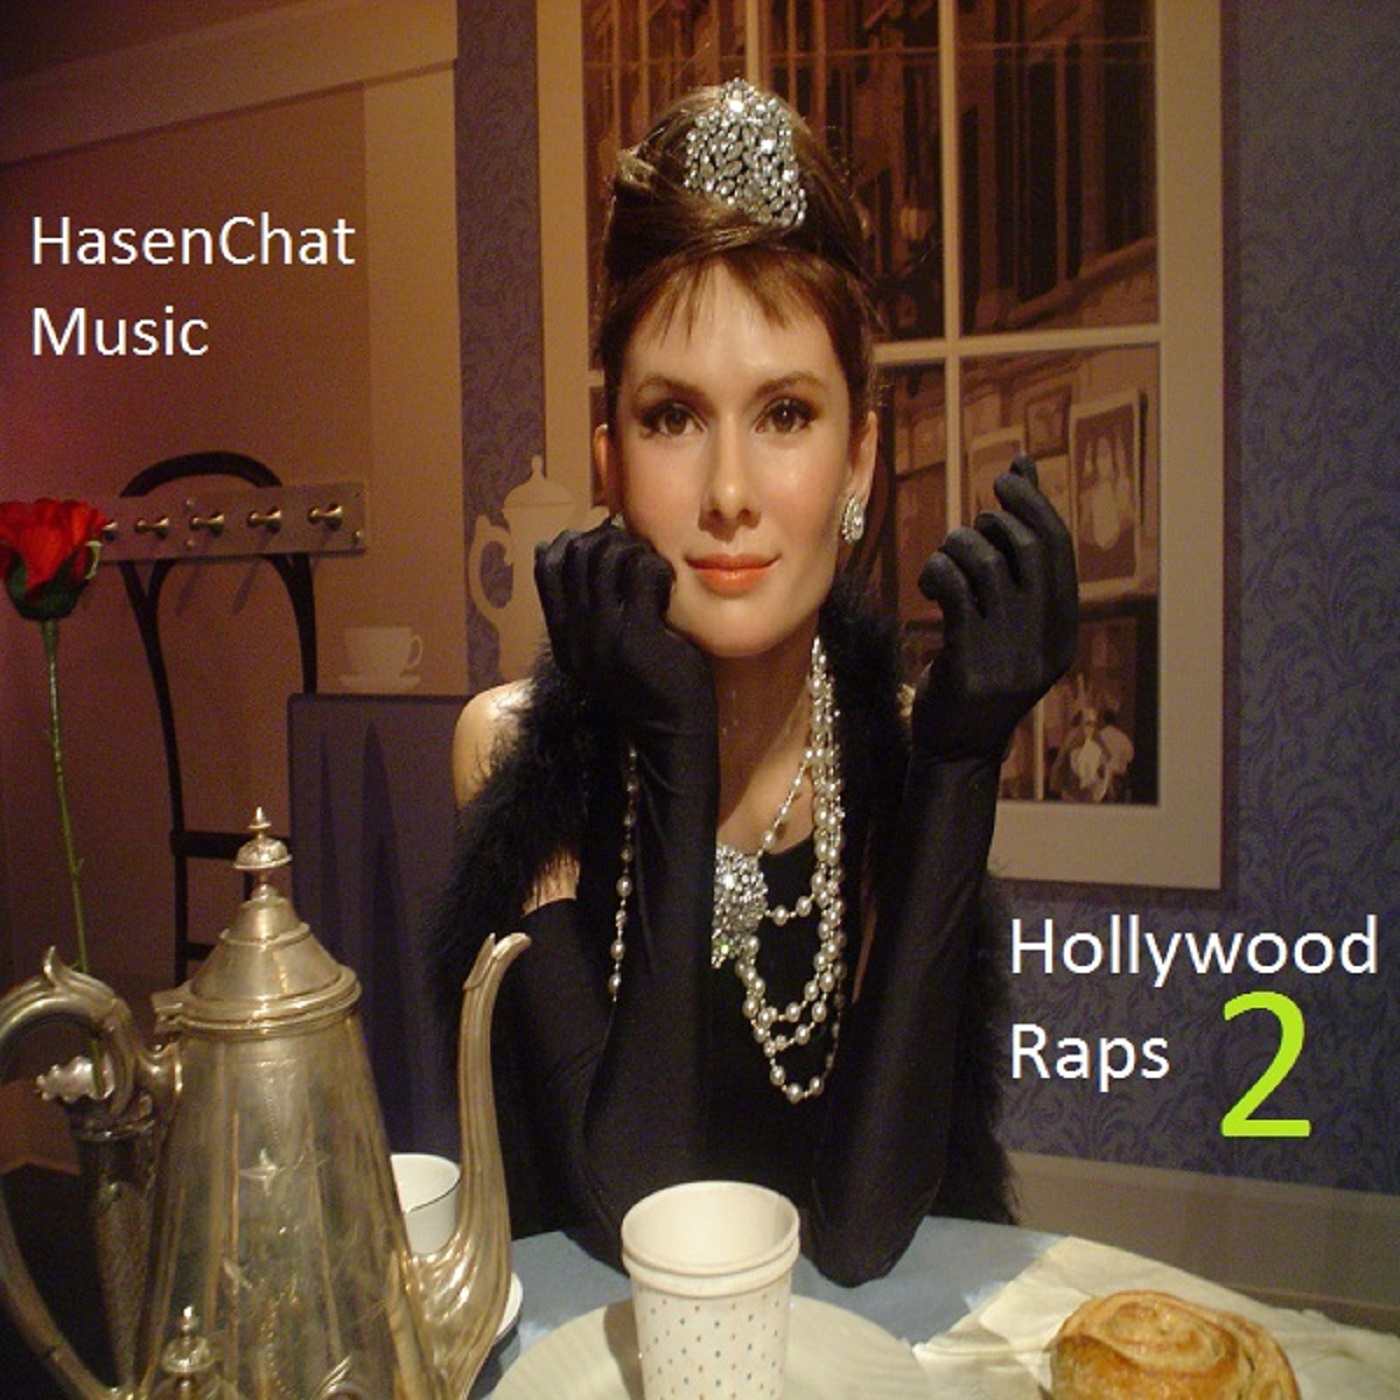 HasenChat Music - Hollywood Raps 2